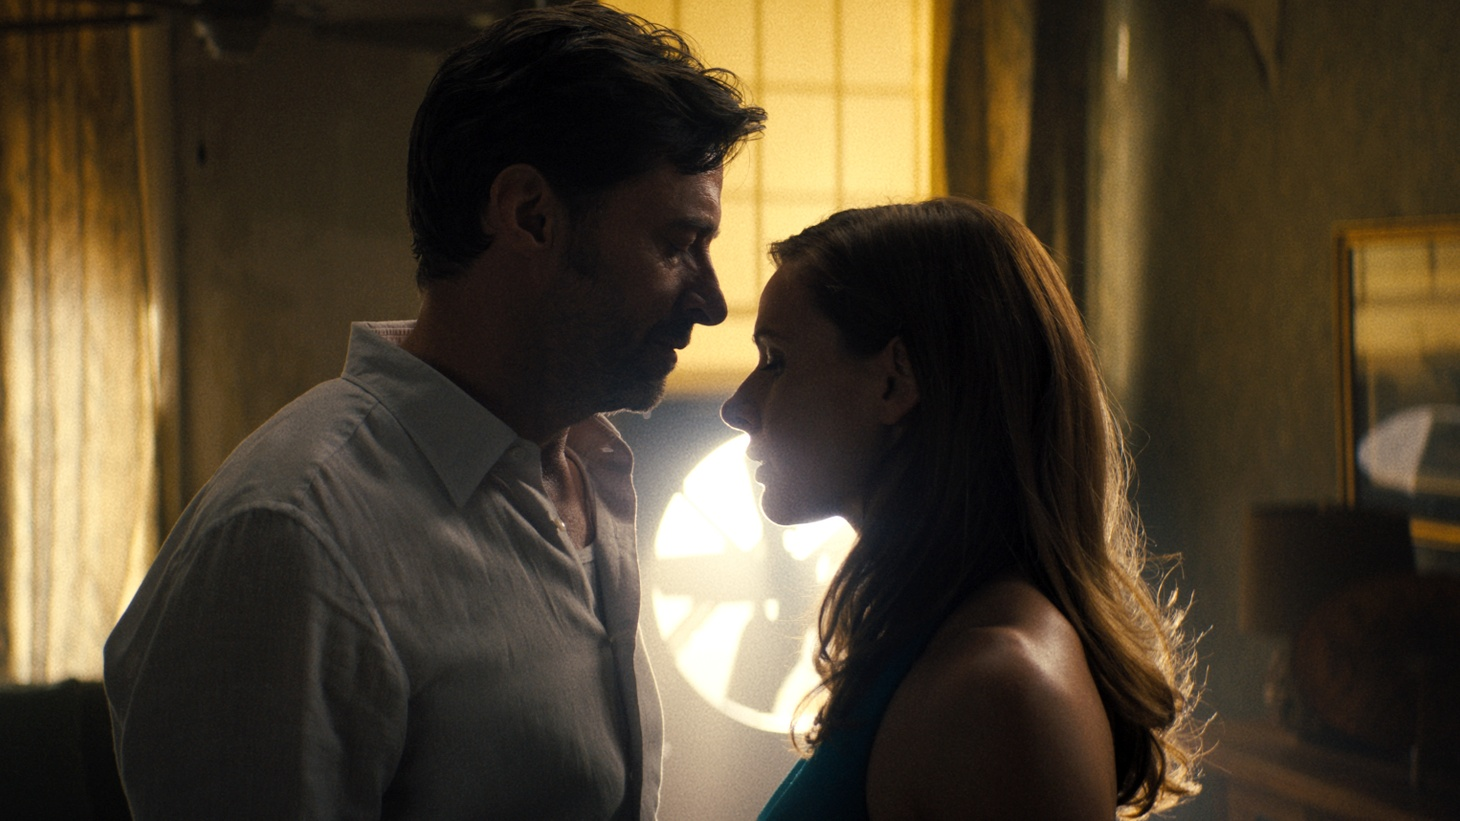 """Hugh Jackman and Rebecca Ferguson star in """"Reminiscence."""" The movie comes out this weekend and is part of the WarnerMedia 2021 film slate that opens in theaters and streams on HBO Max the same day."""